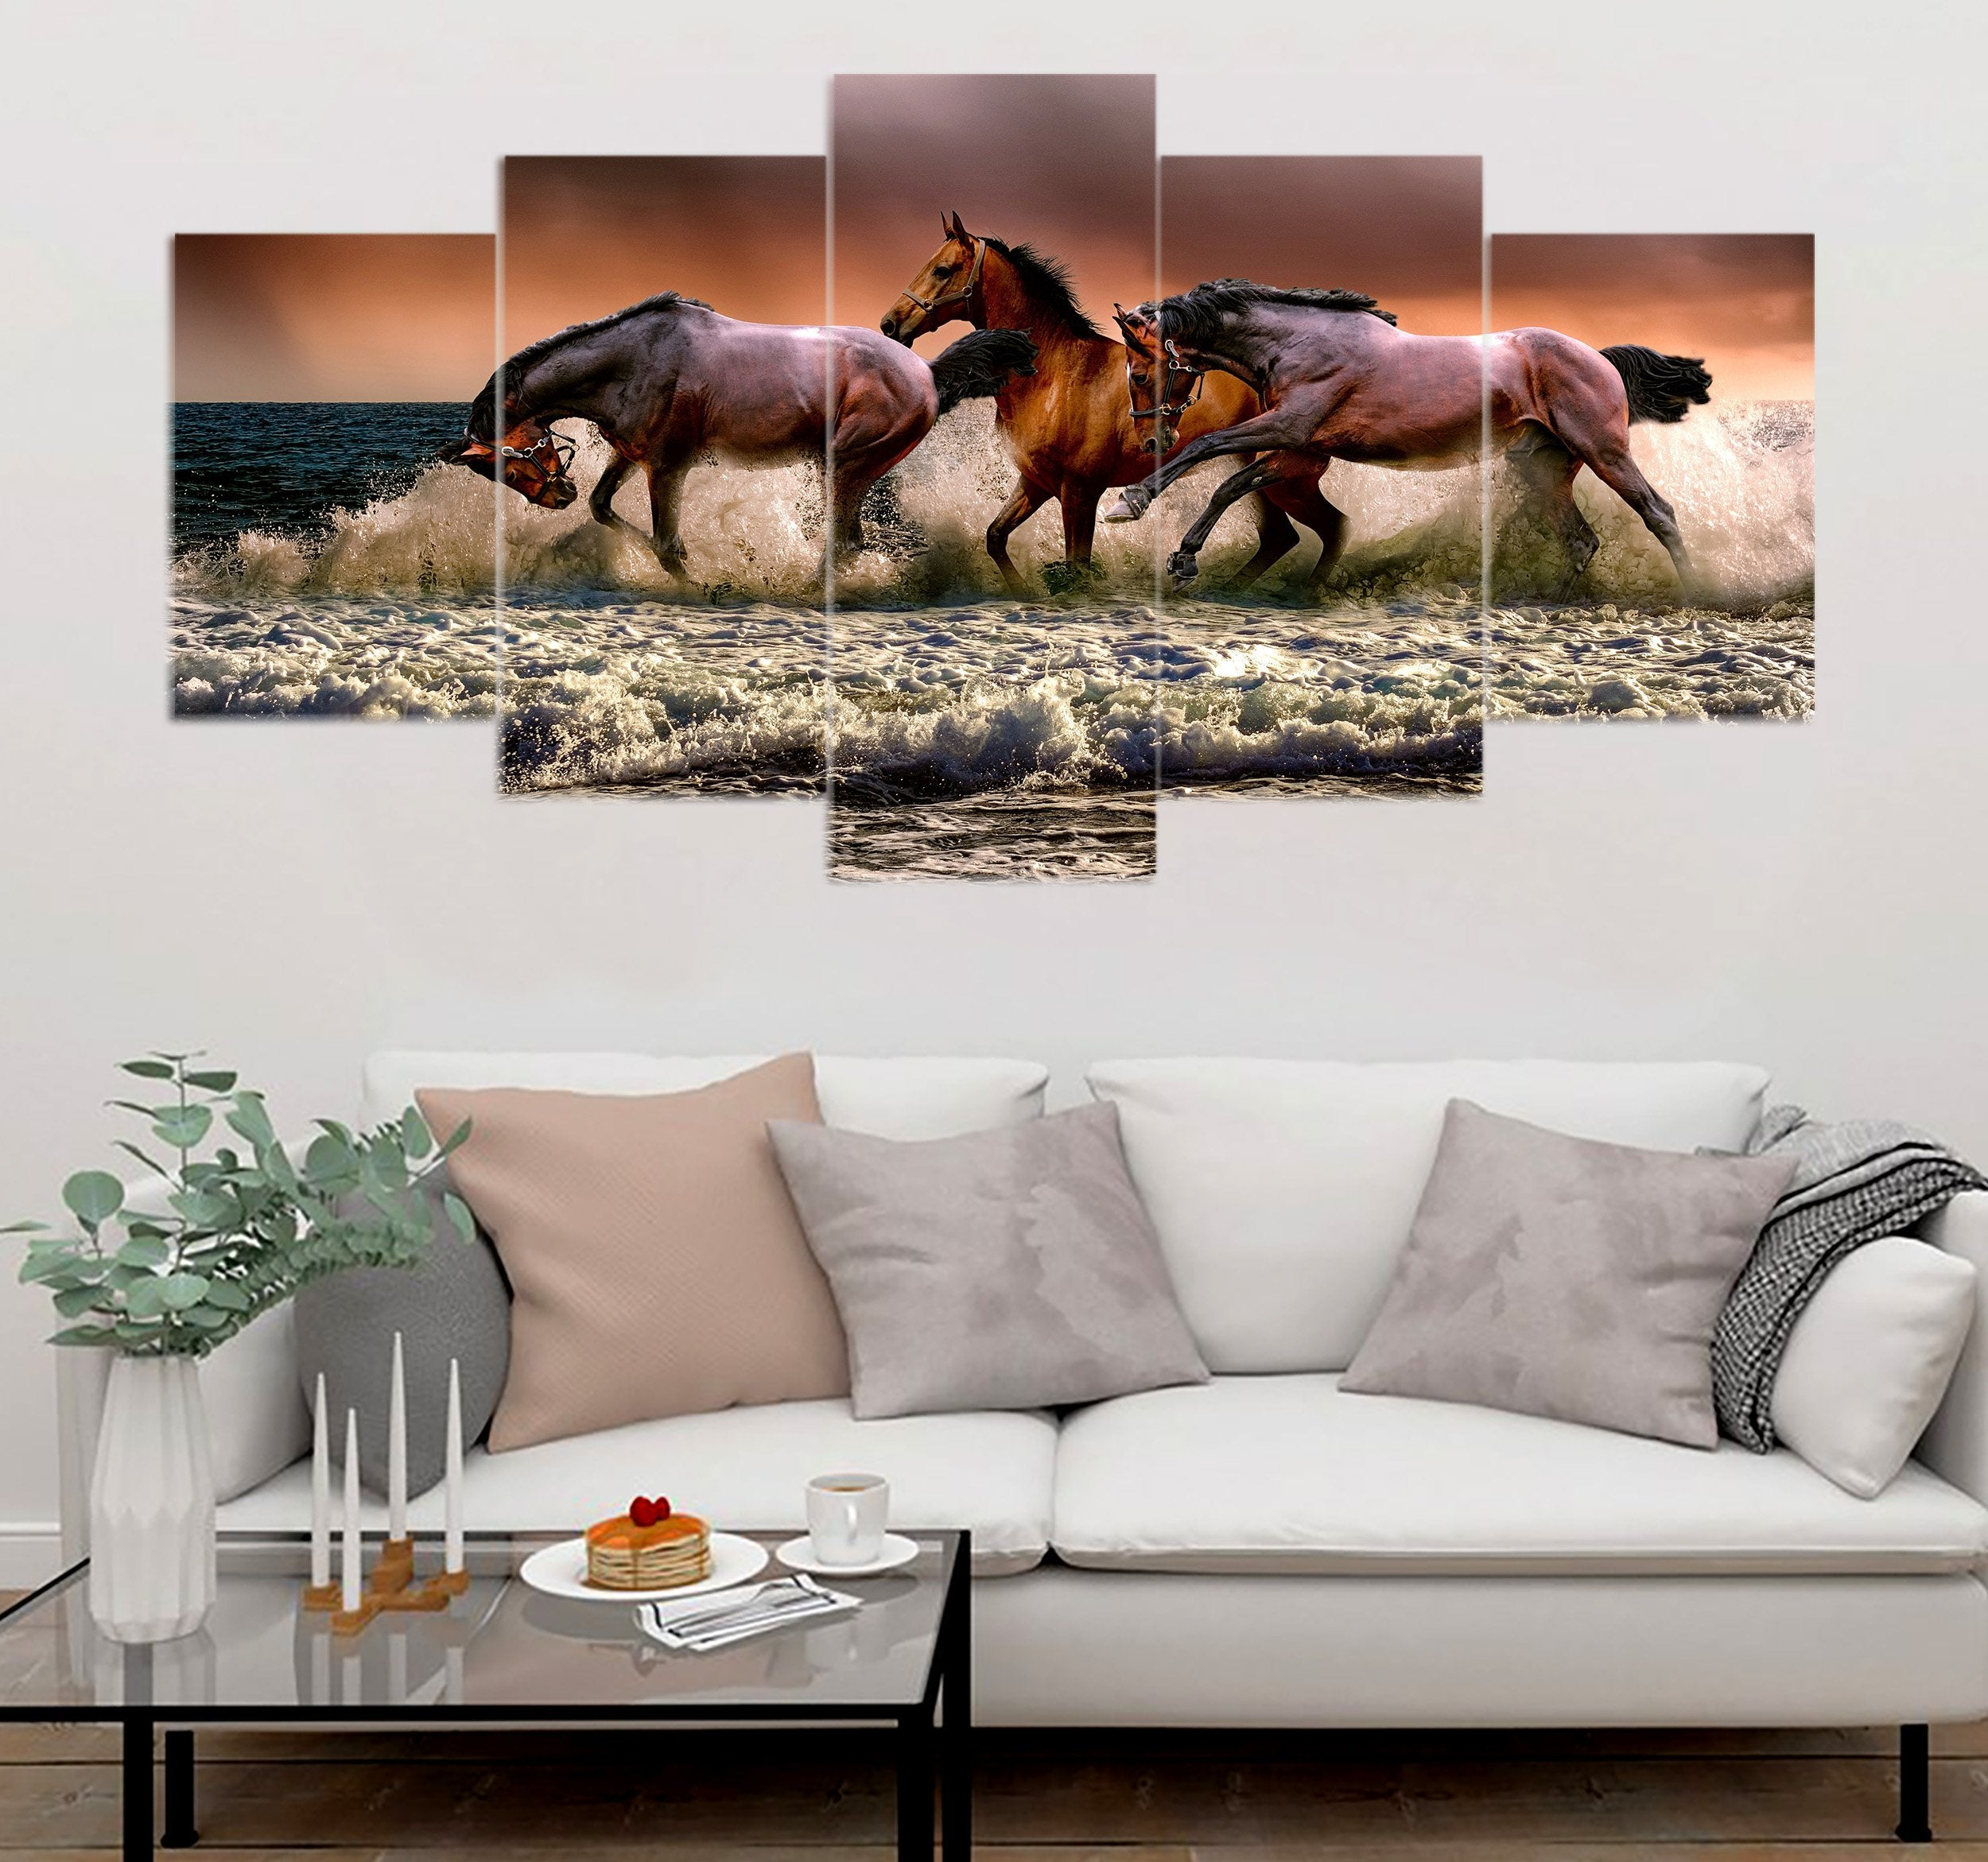 5-piece Horses printed Canvas Wall Art SCDK100413